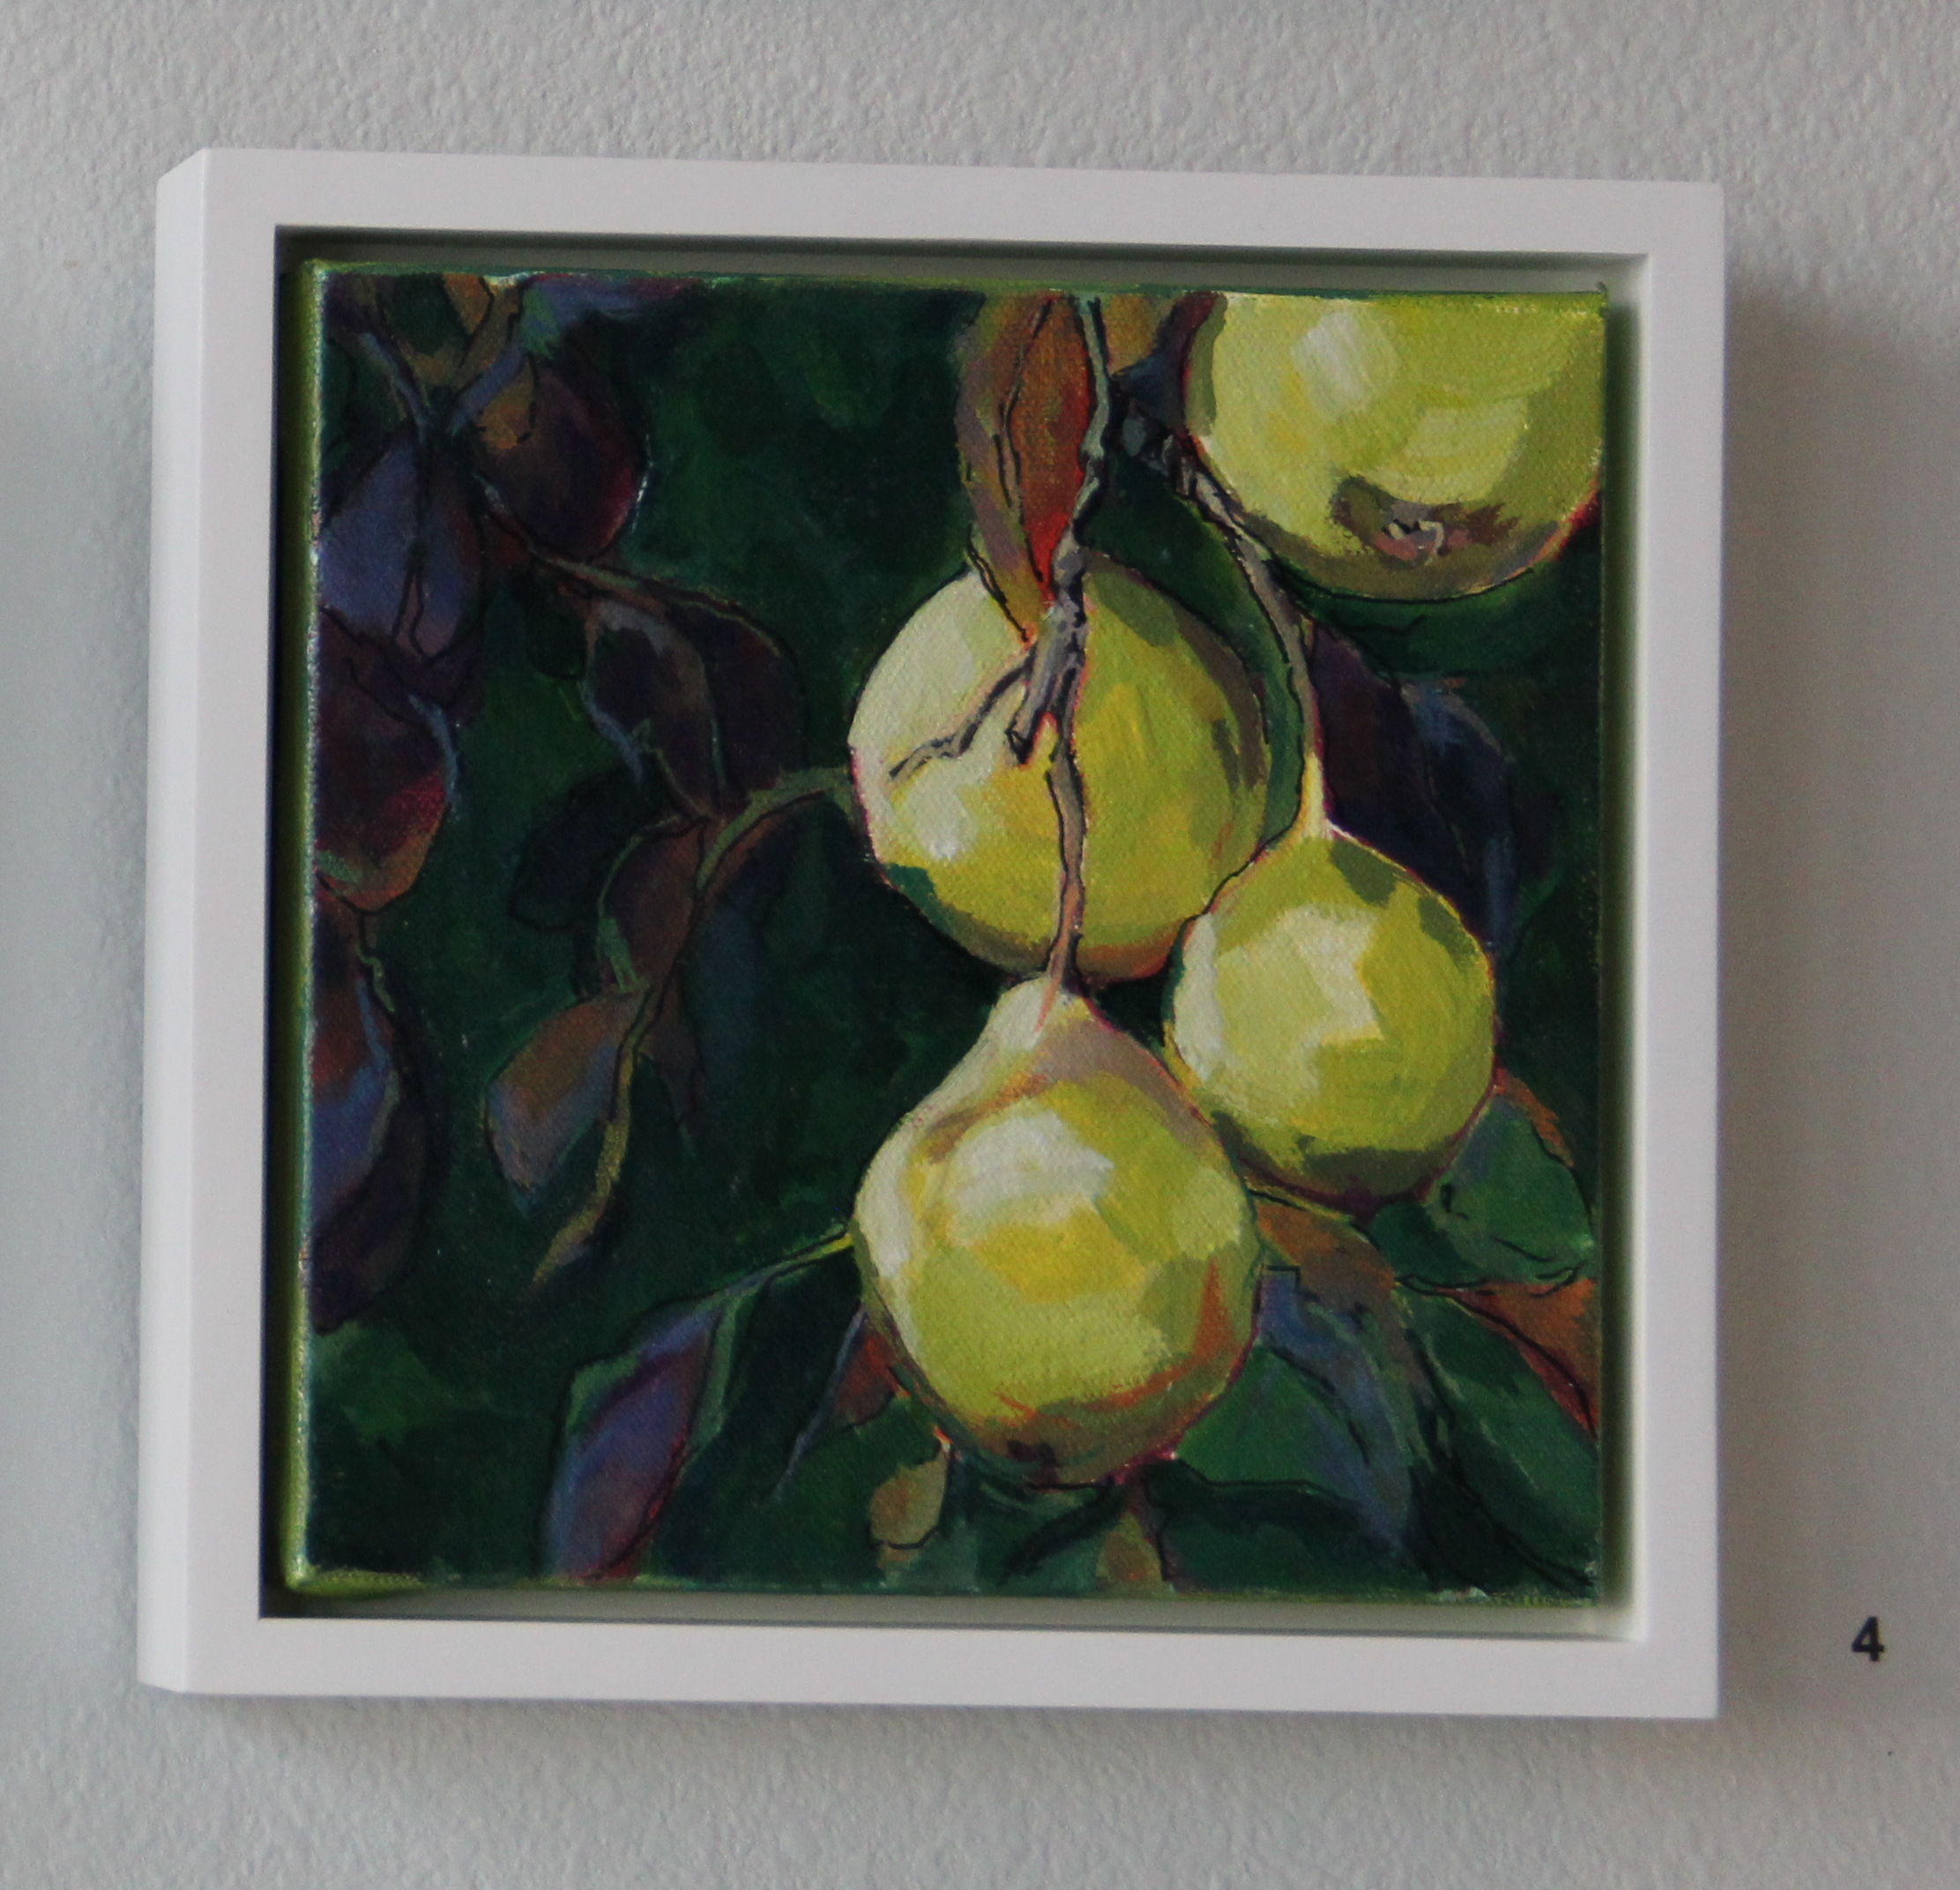 NANCY HIELSCHER, FRESH PEARS